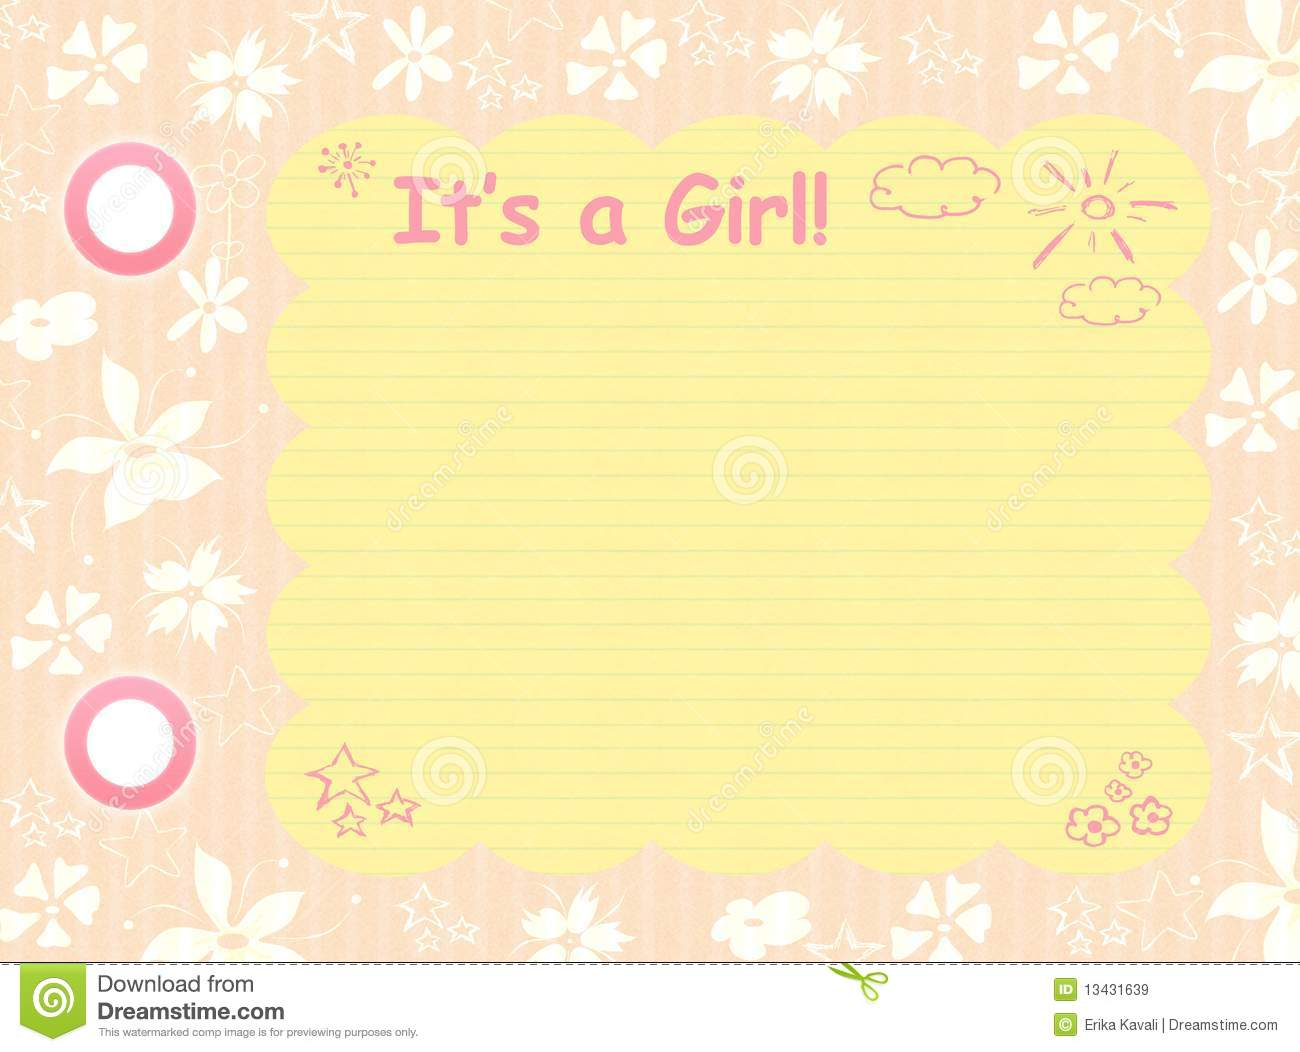 Its A Girl Template Royalty Free Stock Images - Image: 13431639